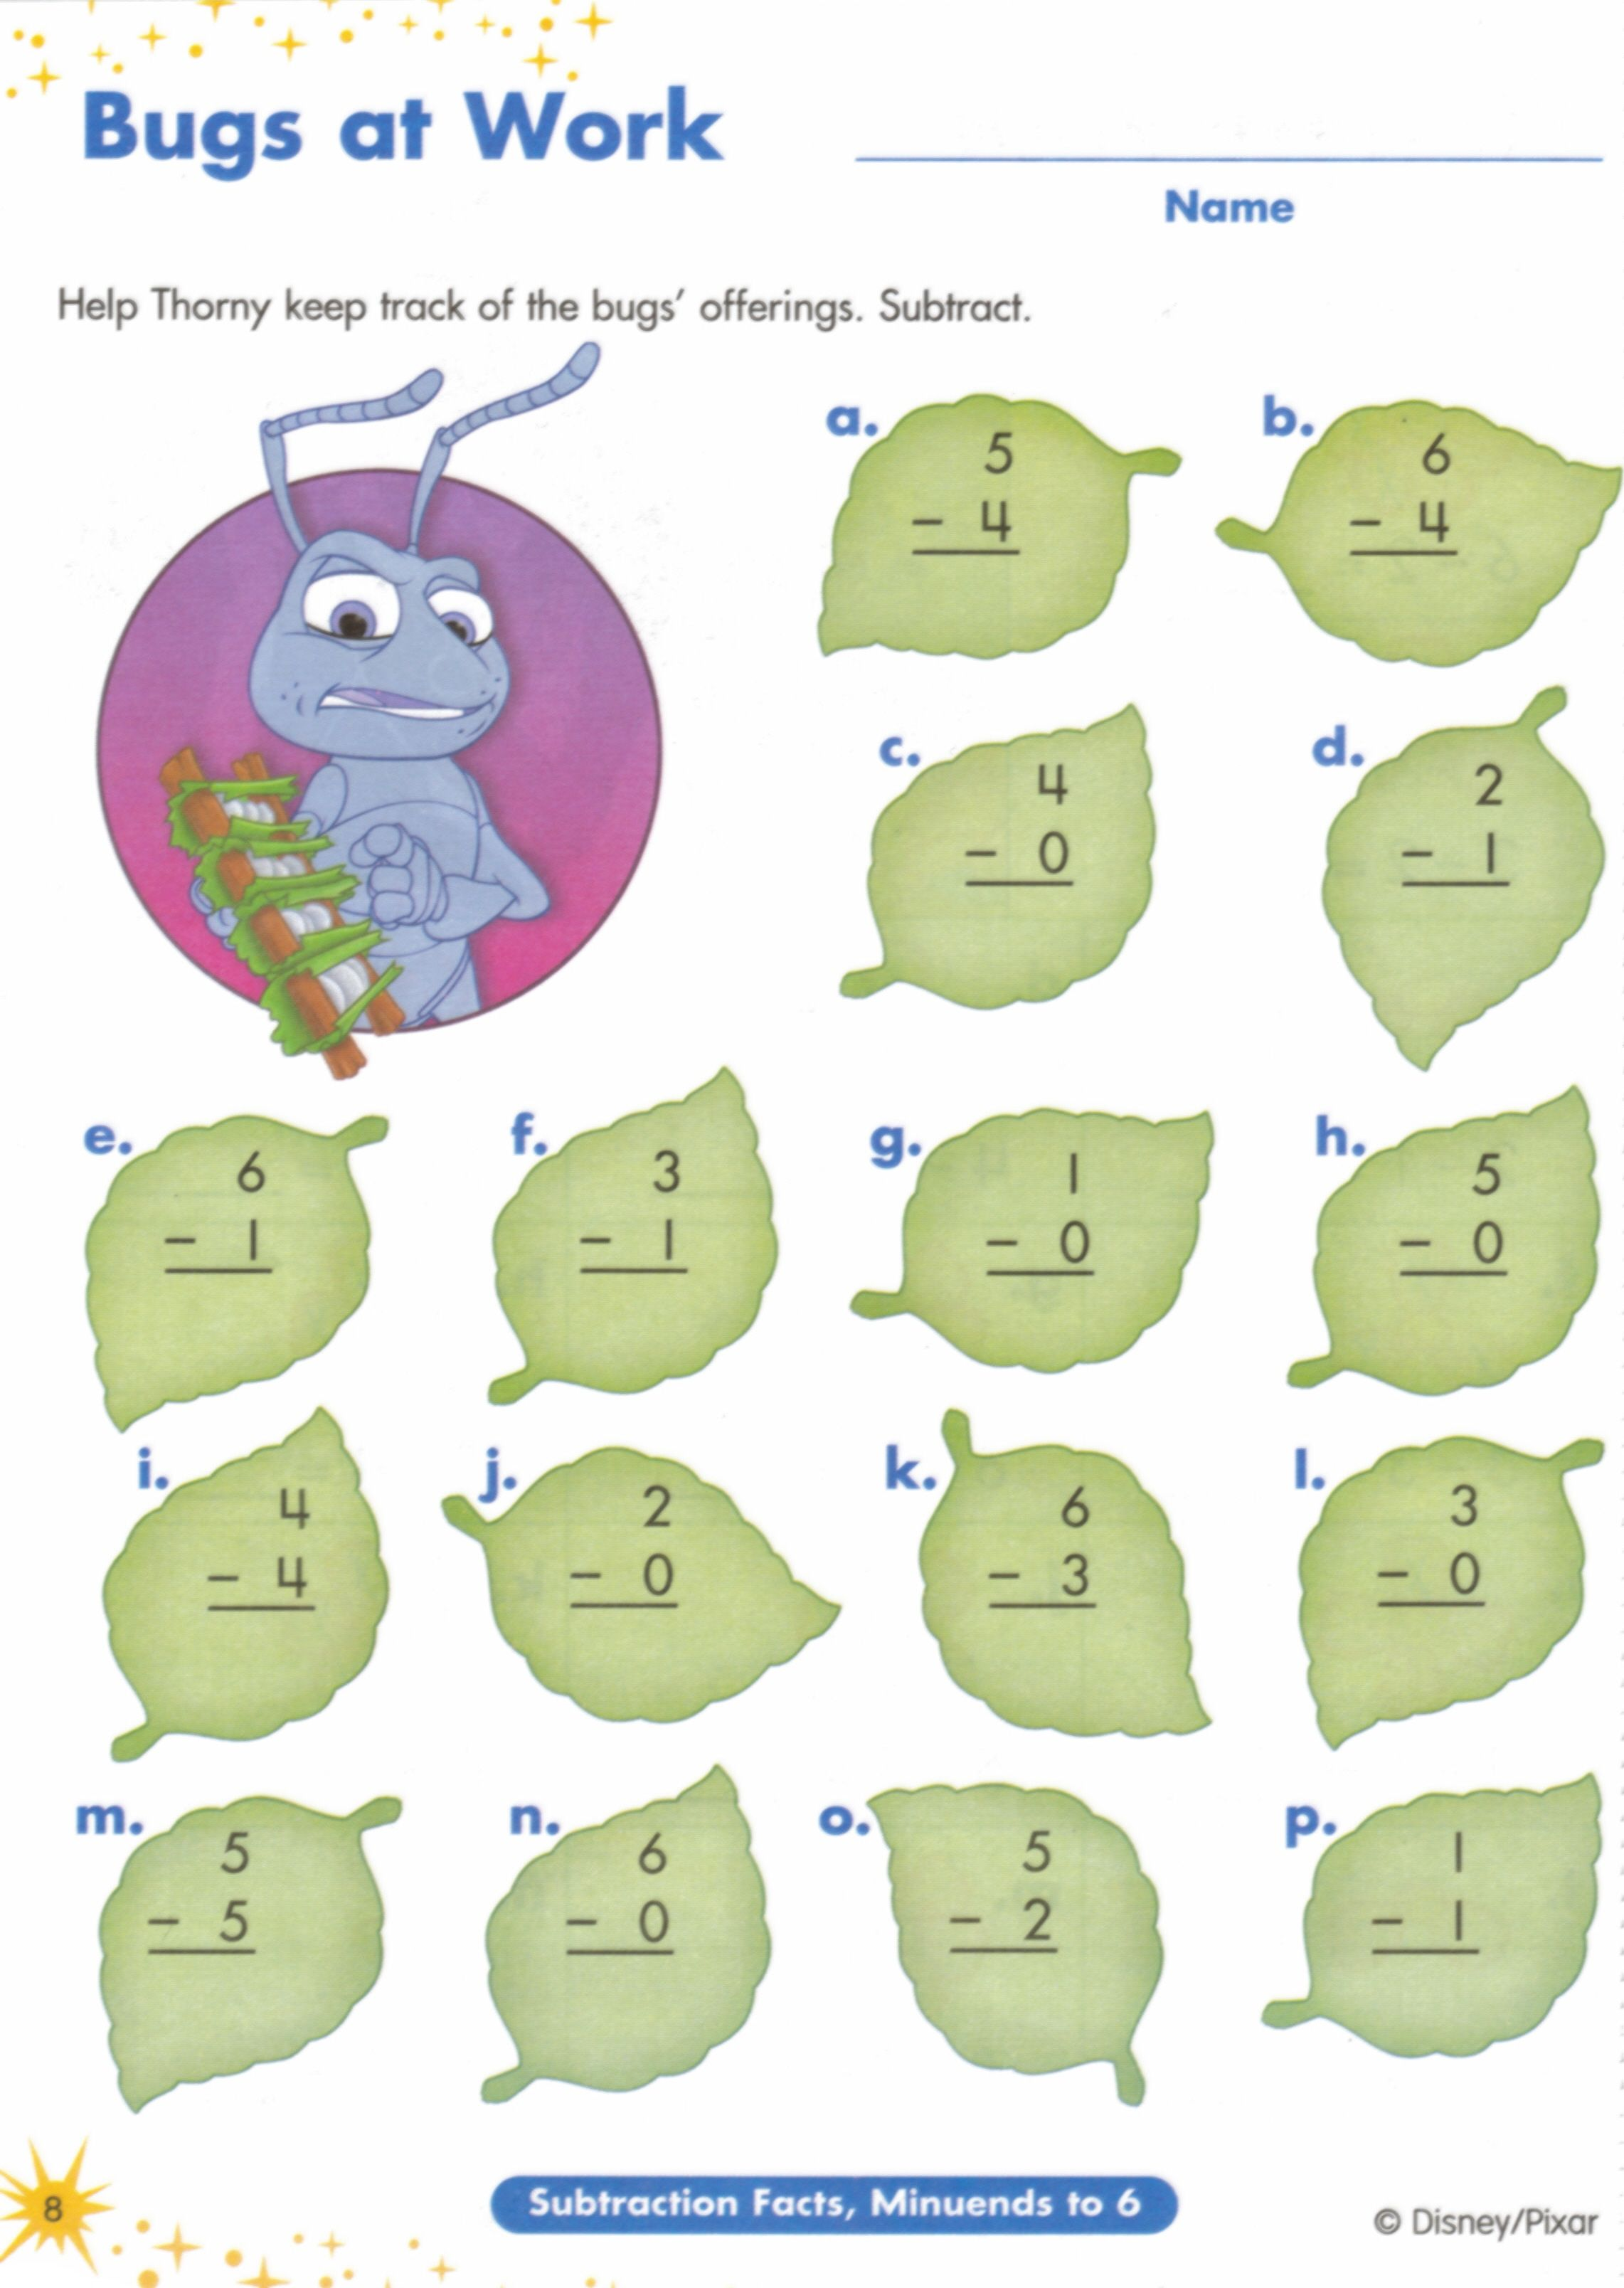 Weirdmailus  Sweet  Images About Worksheets On Pinterest  Fun Facts For Kids  With Interesting  Images About Worksheets On Pinterest  Fun Facts For Kids Earth Day Worksheets And Jungles With Comely Table Of Contents Worksheet Also Pythagorean Theorem Word Problems Worksheet With Answers In Addition Free French Worksheets And Polynomial Functions Worksheets As Well As Math Decimal Worksheets Additionally Work Energy Theorem Worksheet From Pinterestcom With Weirdmailus  Interesting  Images About Worksheets On Pinterest  Fun Facts For Kids  With Comely  Images About Worksheets On Pinterest  Fun Facts For Kids Earth Day Worksheets And Jungles And Sweet Table Of Contents Worksheet Also Pythagorean Theorem Word Problems Worksheet With Answers In Addition Free French Worksheets From Pinterestcom